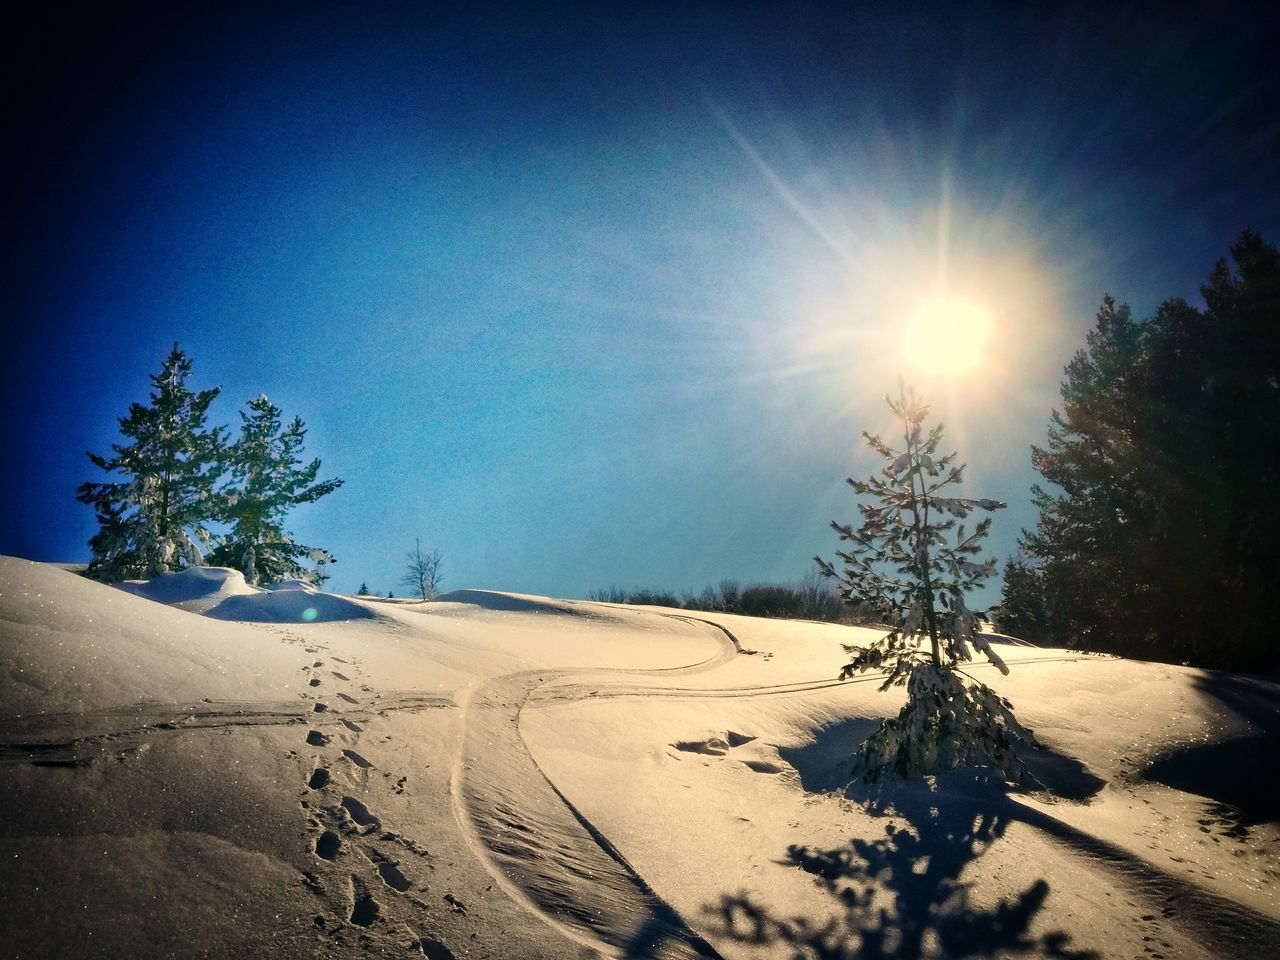 Climb Tree Sunlight Nature Clear Sky Beauty In Nature Sky Sun Blue Tranquility Sunbeam Shadow Tranquil Scene No People Scenics Outdoors Day Snow Star - Space Snowscape Dark Snowy Path Path Through Forest. Snowy Path Snowy Forest Snow ❄ Snowy Trees